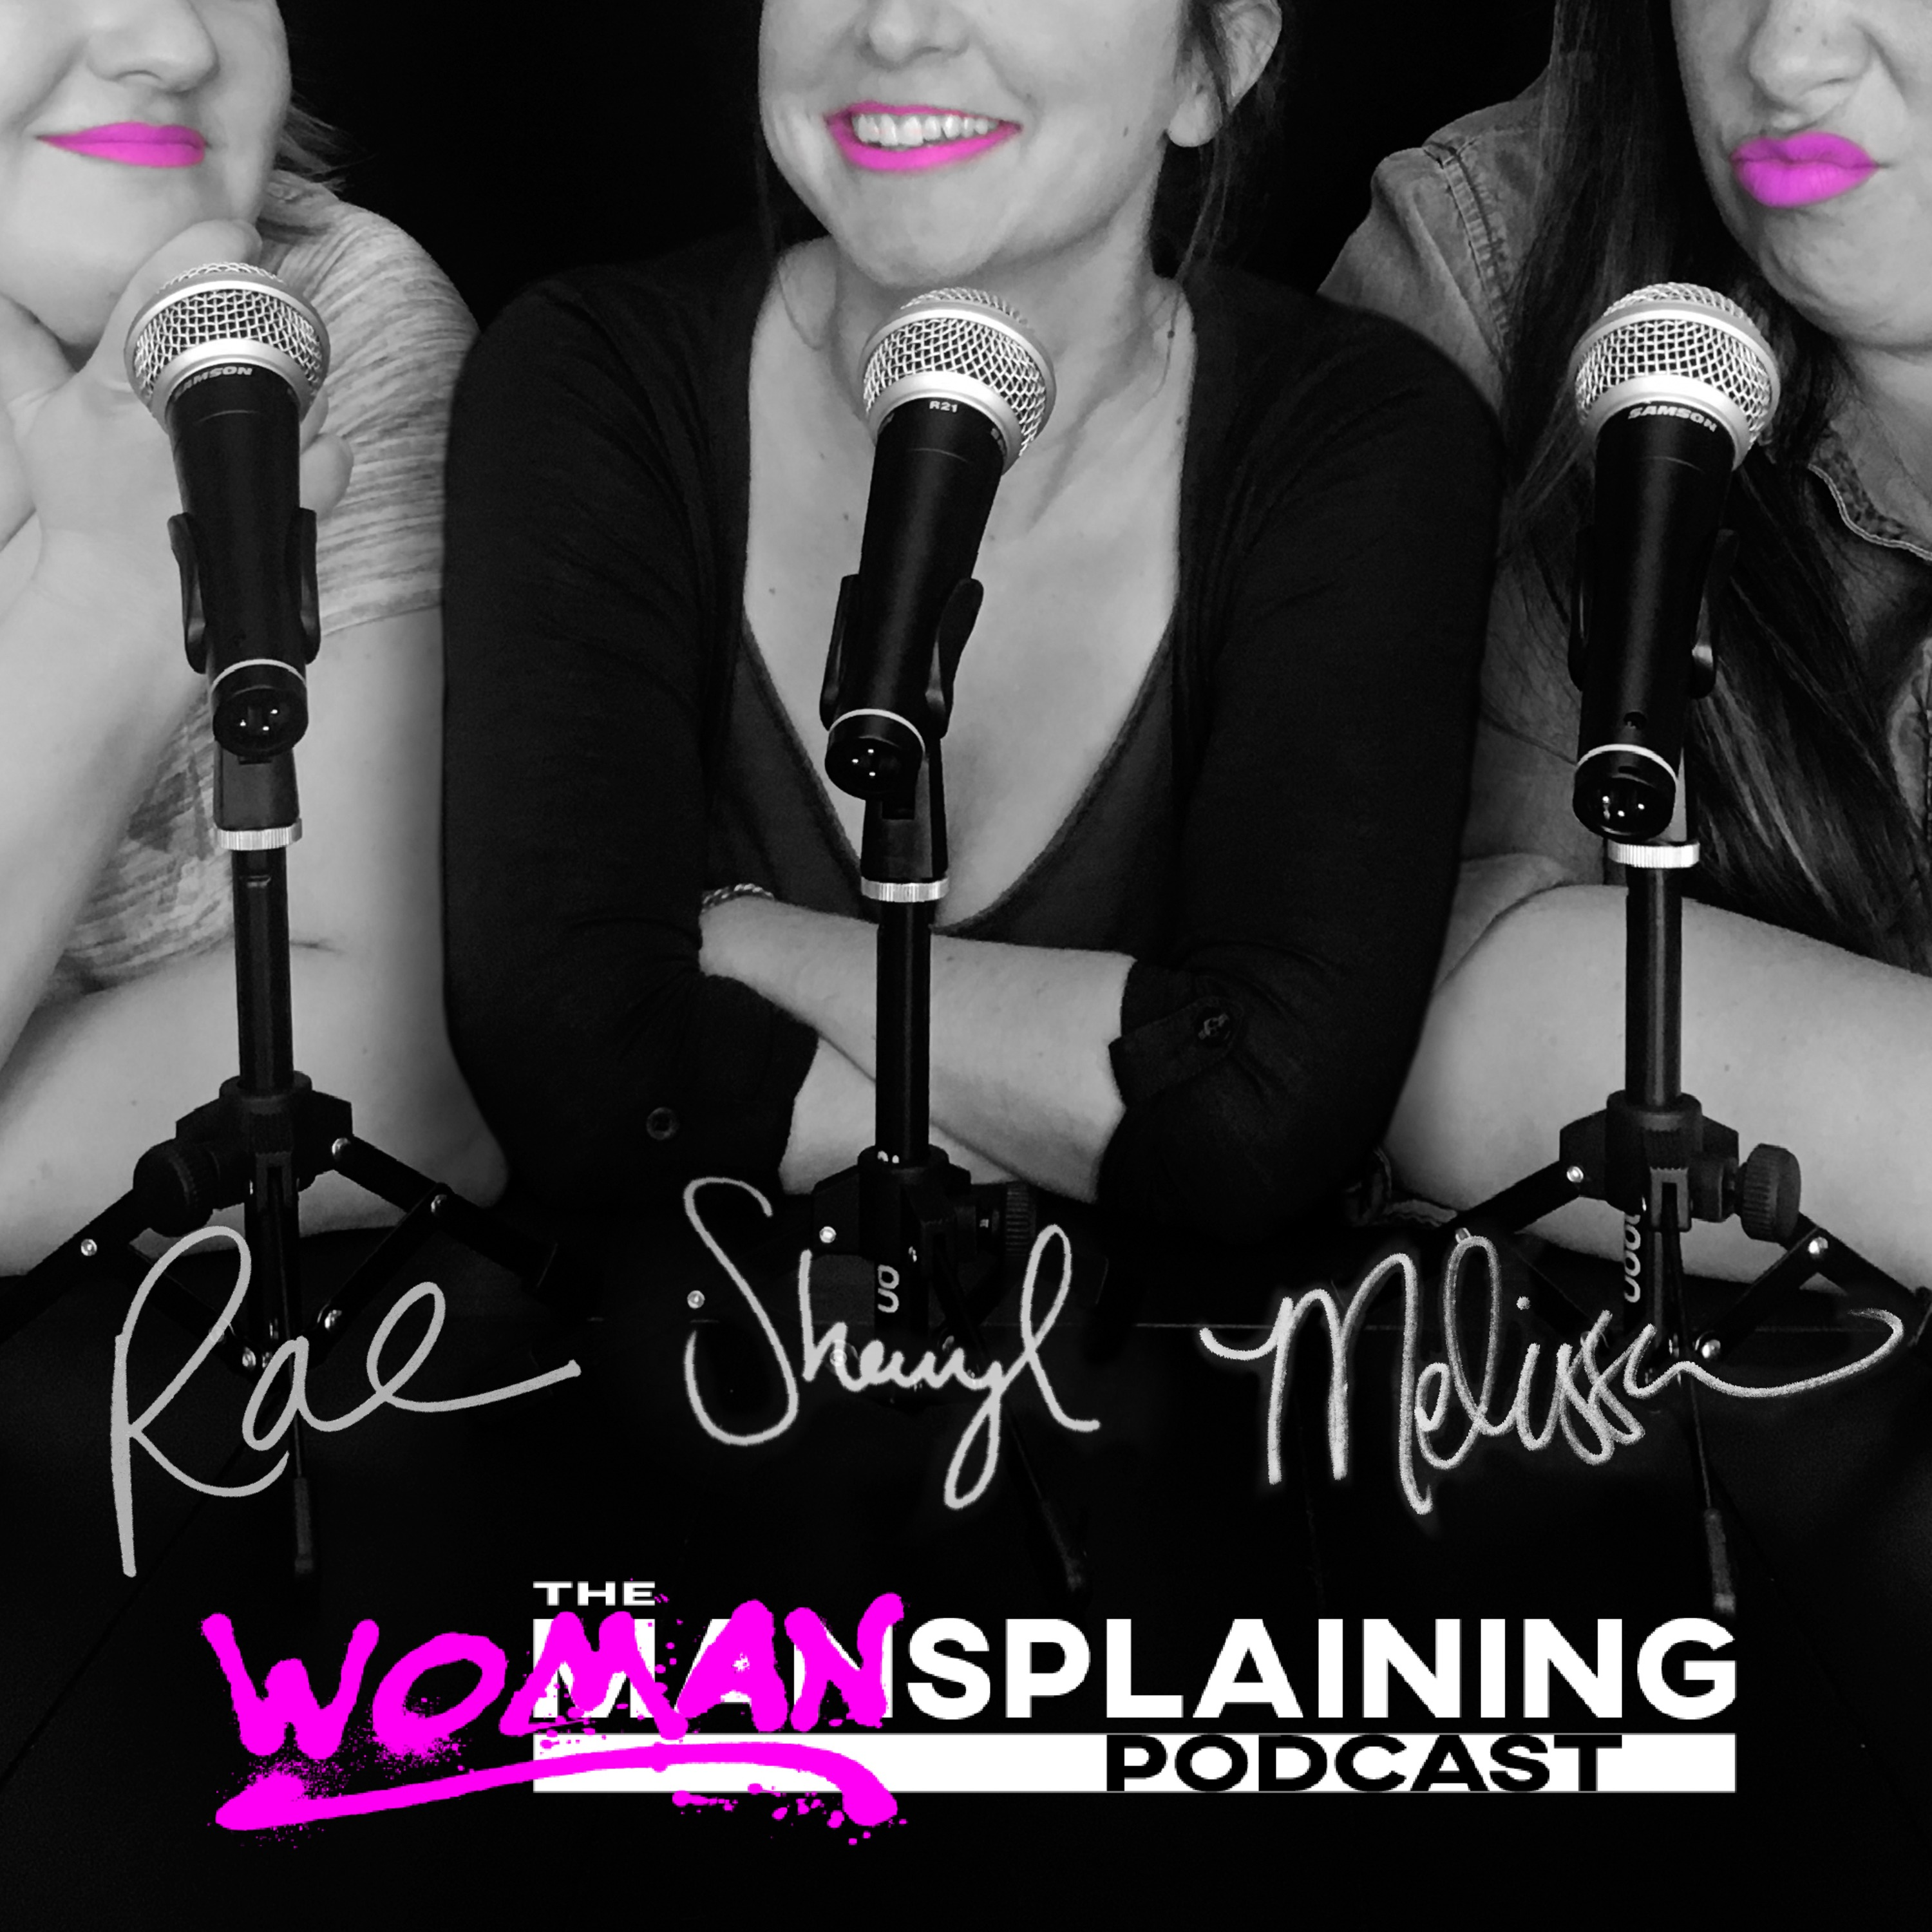 Rae Reynolds from The Womansplaining Podcast